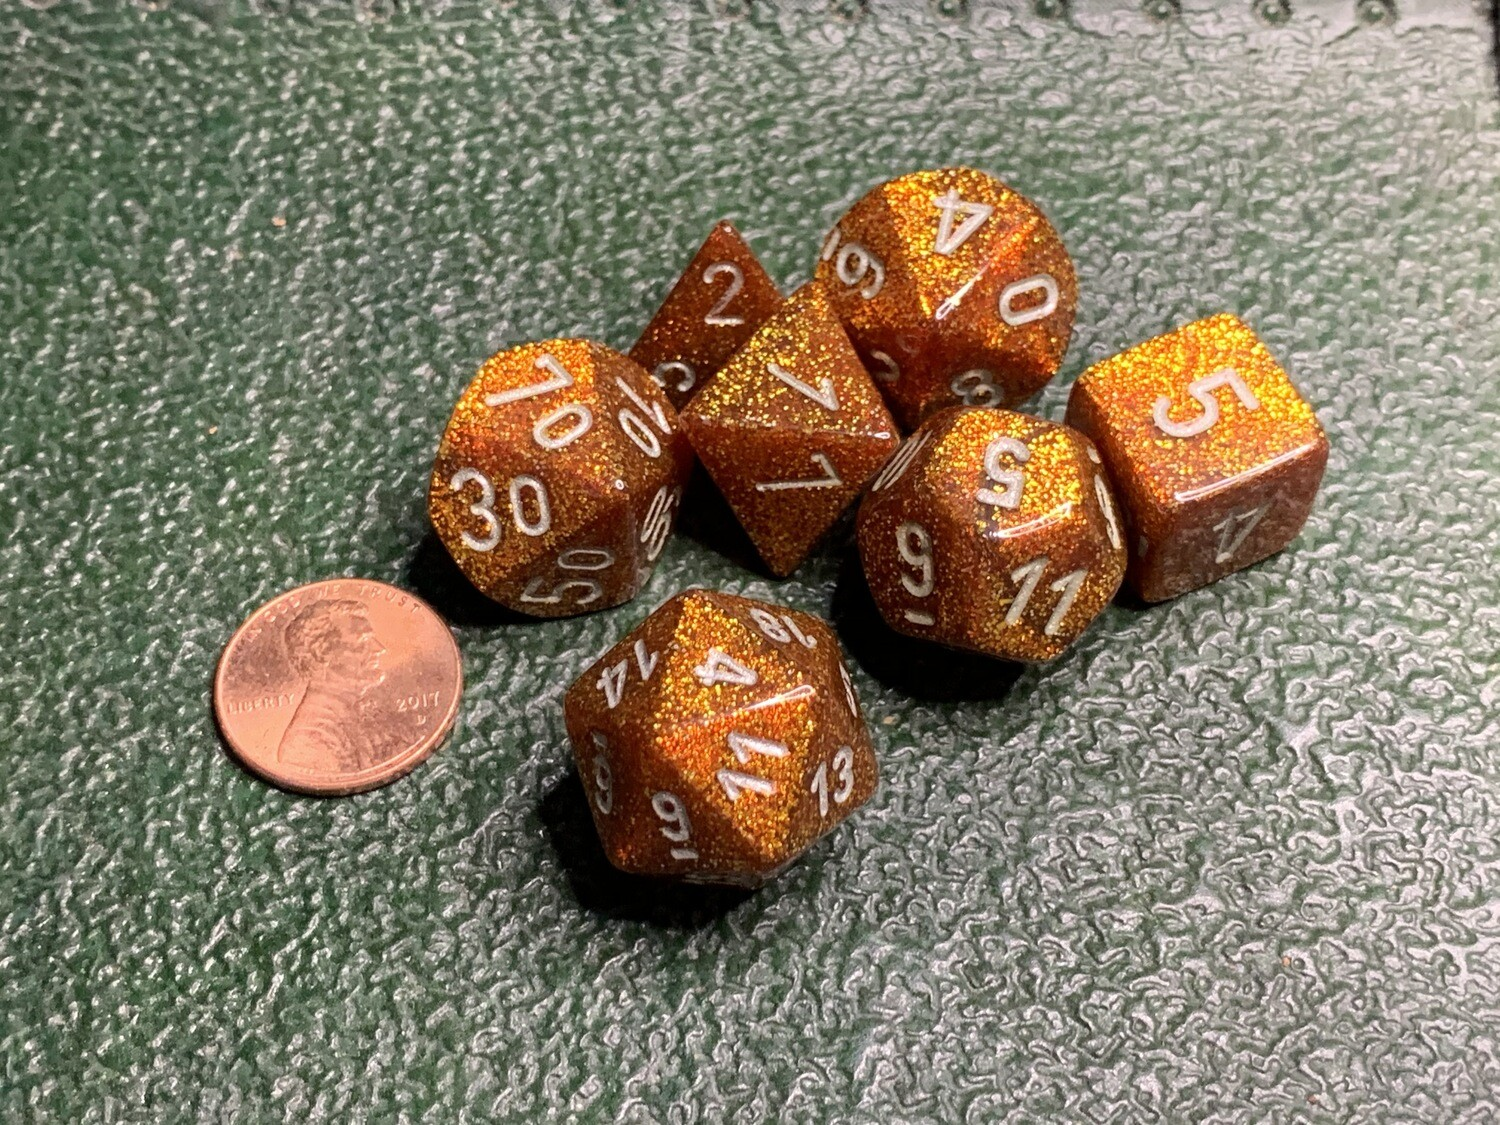 16mm 7 Die Polyhedral Dice Set - Giltter Gold with White